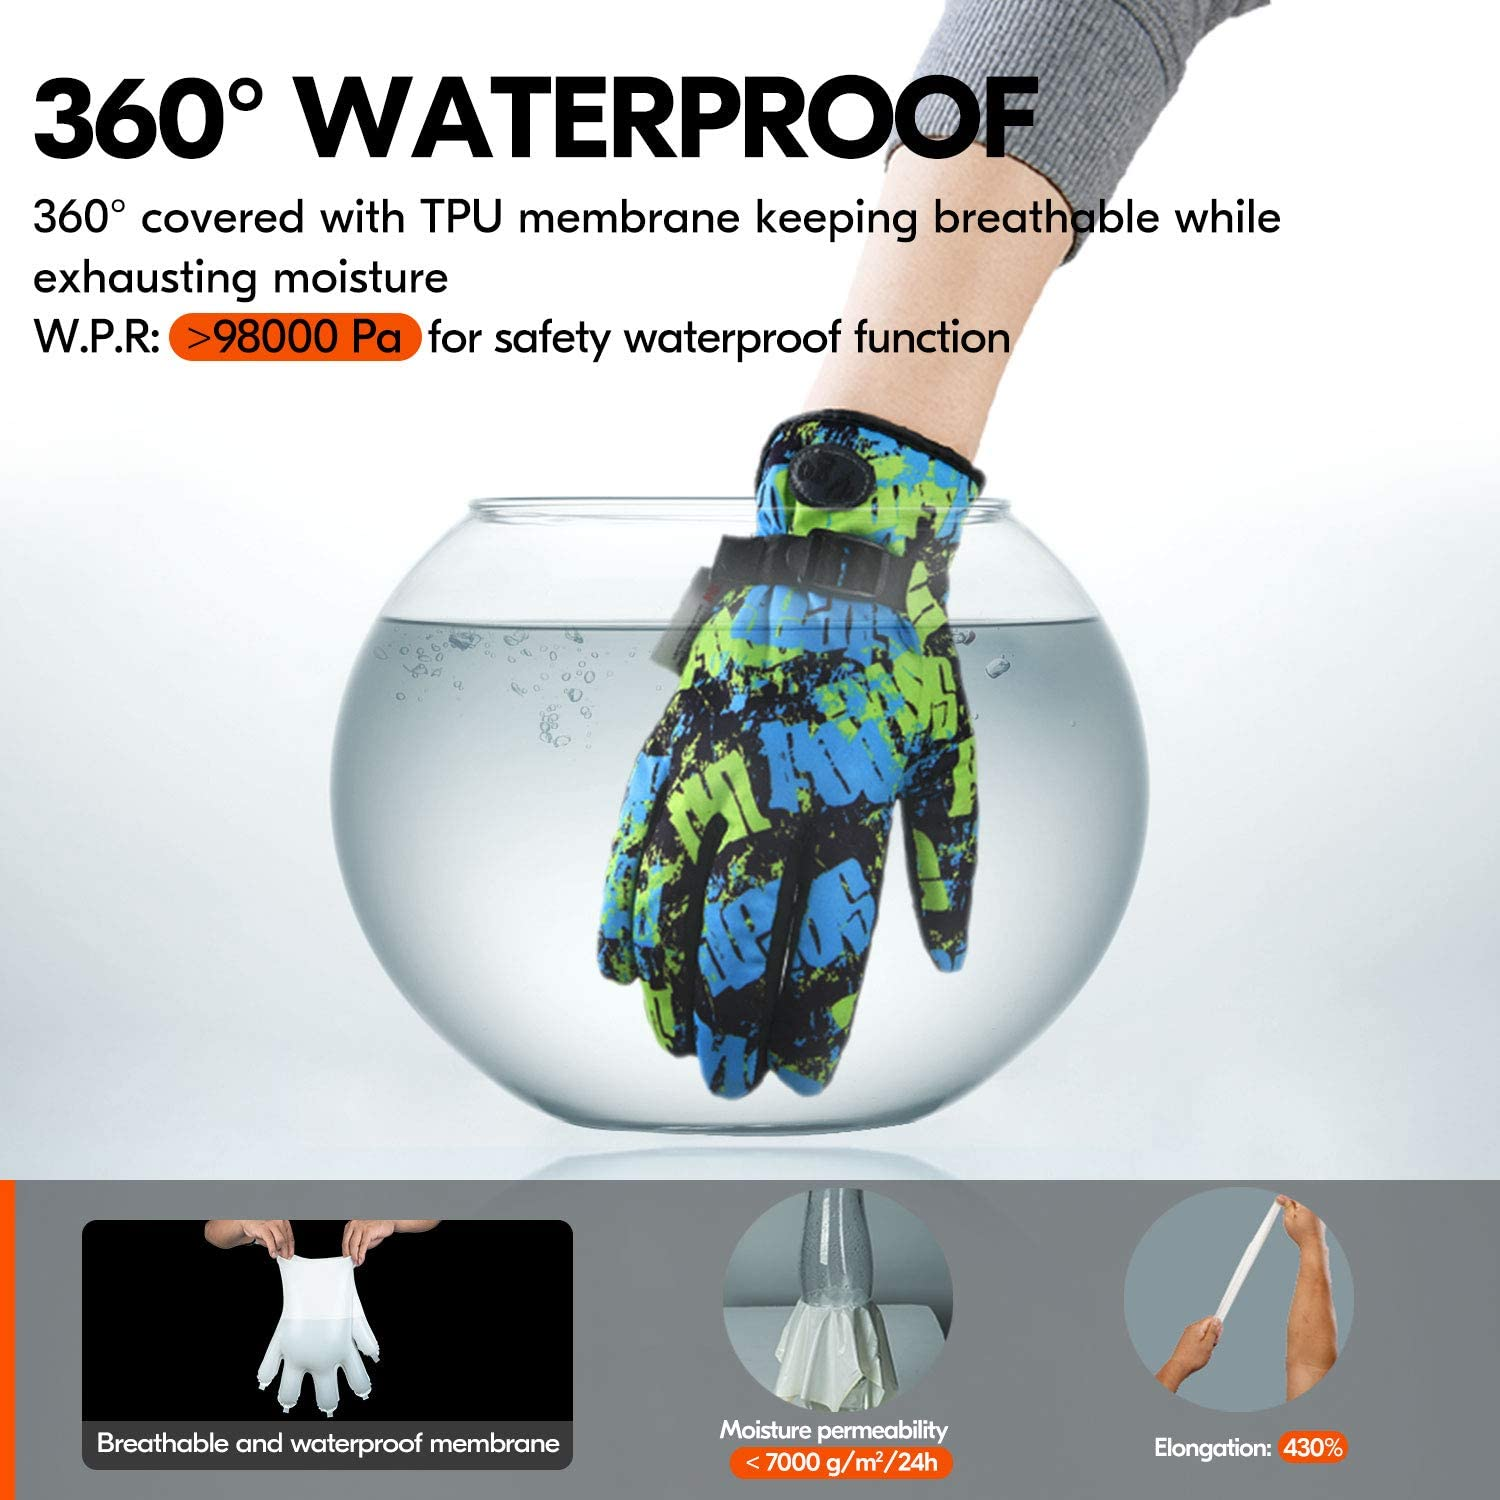 Cycling Age 12-13 Juniors 32℉ or Above 3M Thinsulate C40 Lined Winter Outdoor Gloves Designed for Running Vgo.. Driving/&Texting 1Pair,Size M,Yellow/&Blue,SL221FW